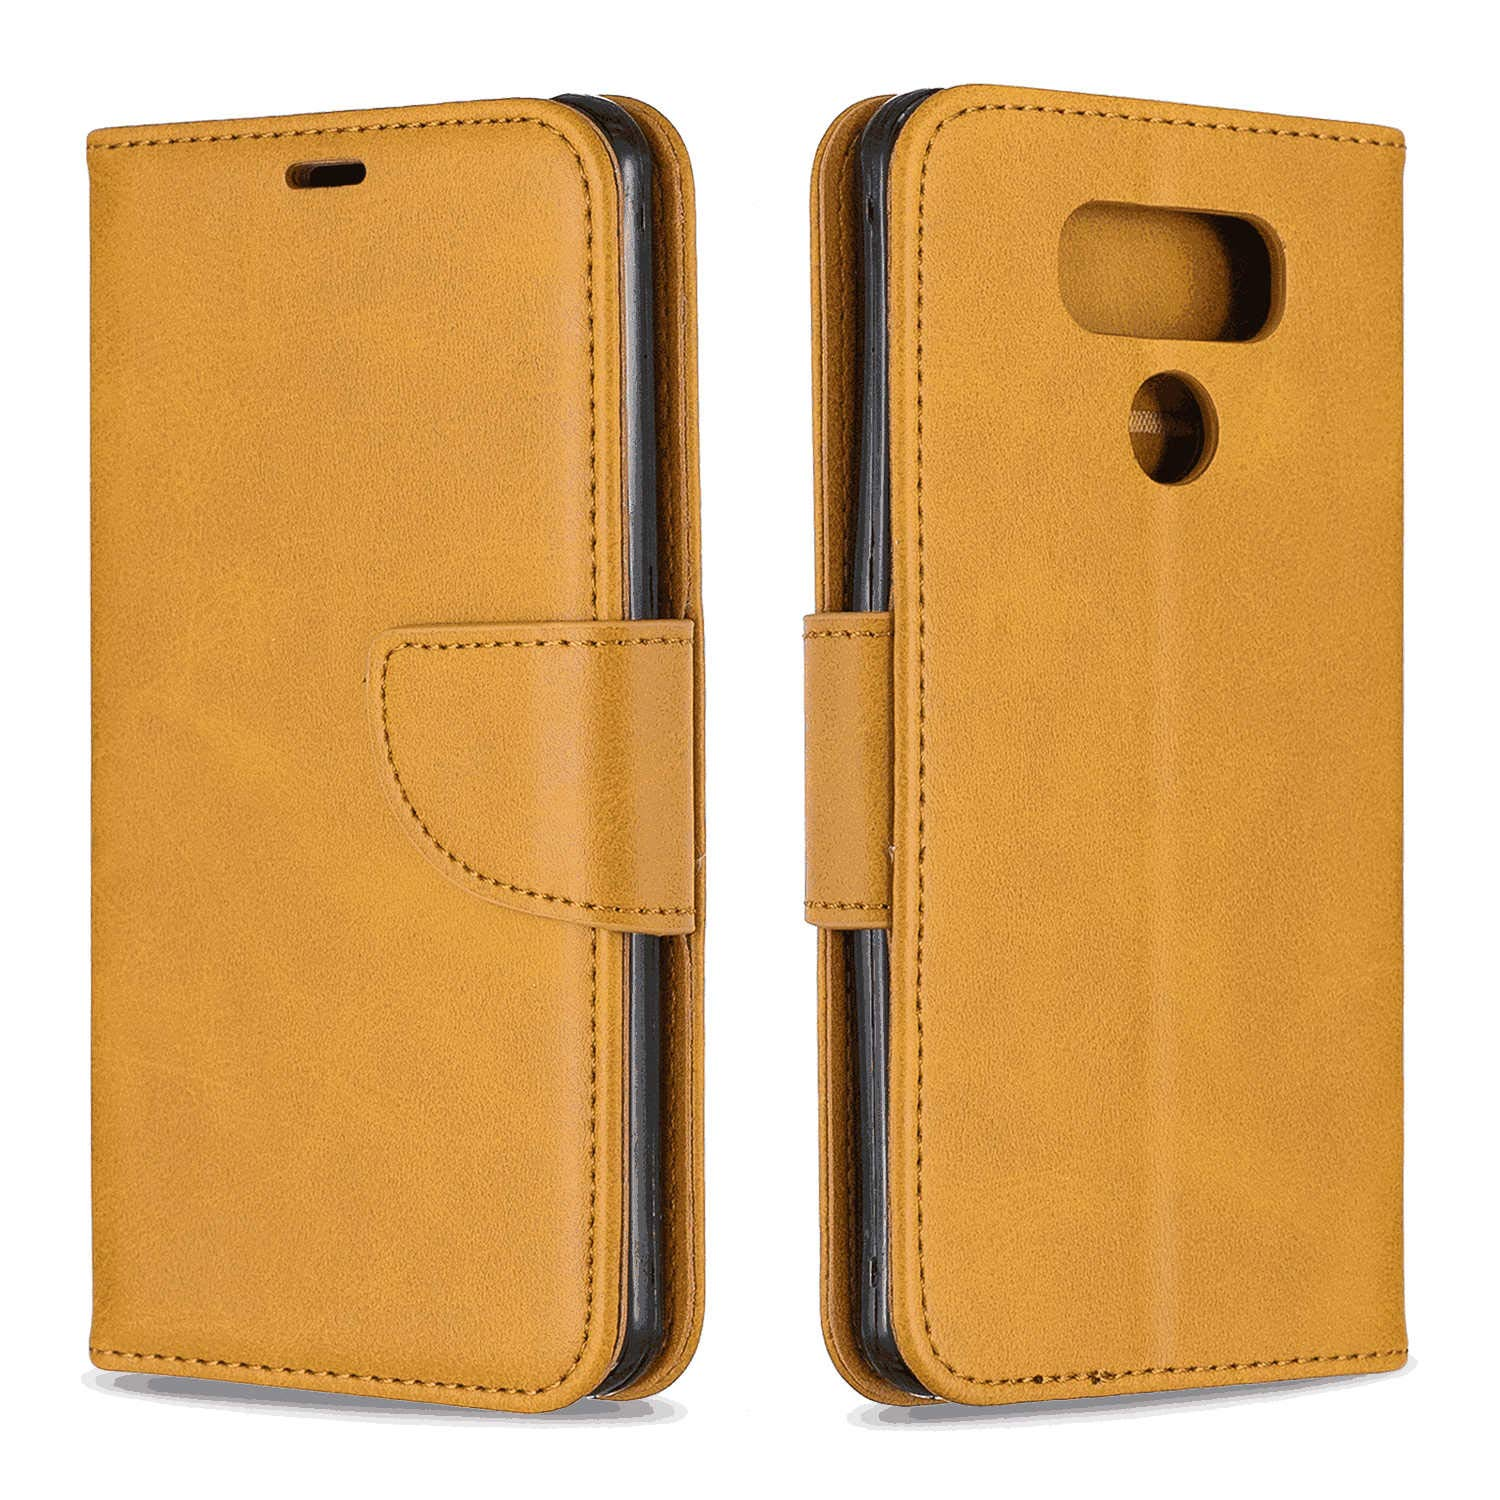 iPhone Xs Flip Case Cover for iPhone Xs Leather Card Holders Wallet case Extra-Protective Business Kickstand with Free Waterproof-Bag Fashion